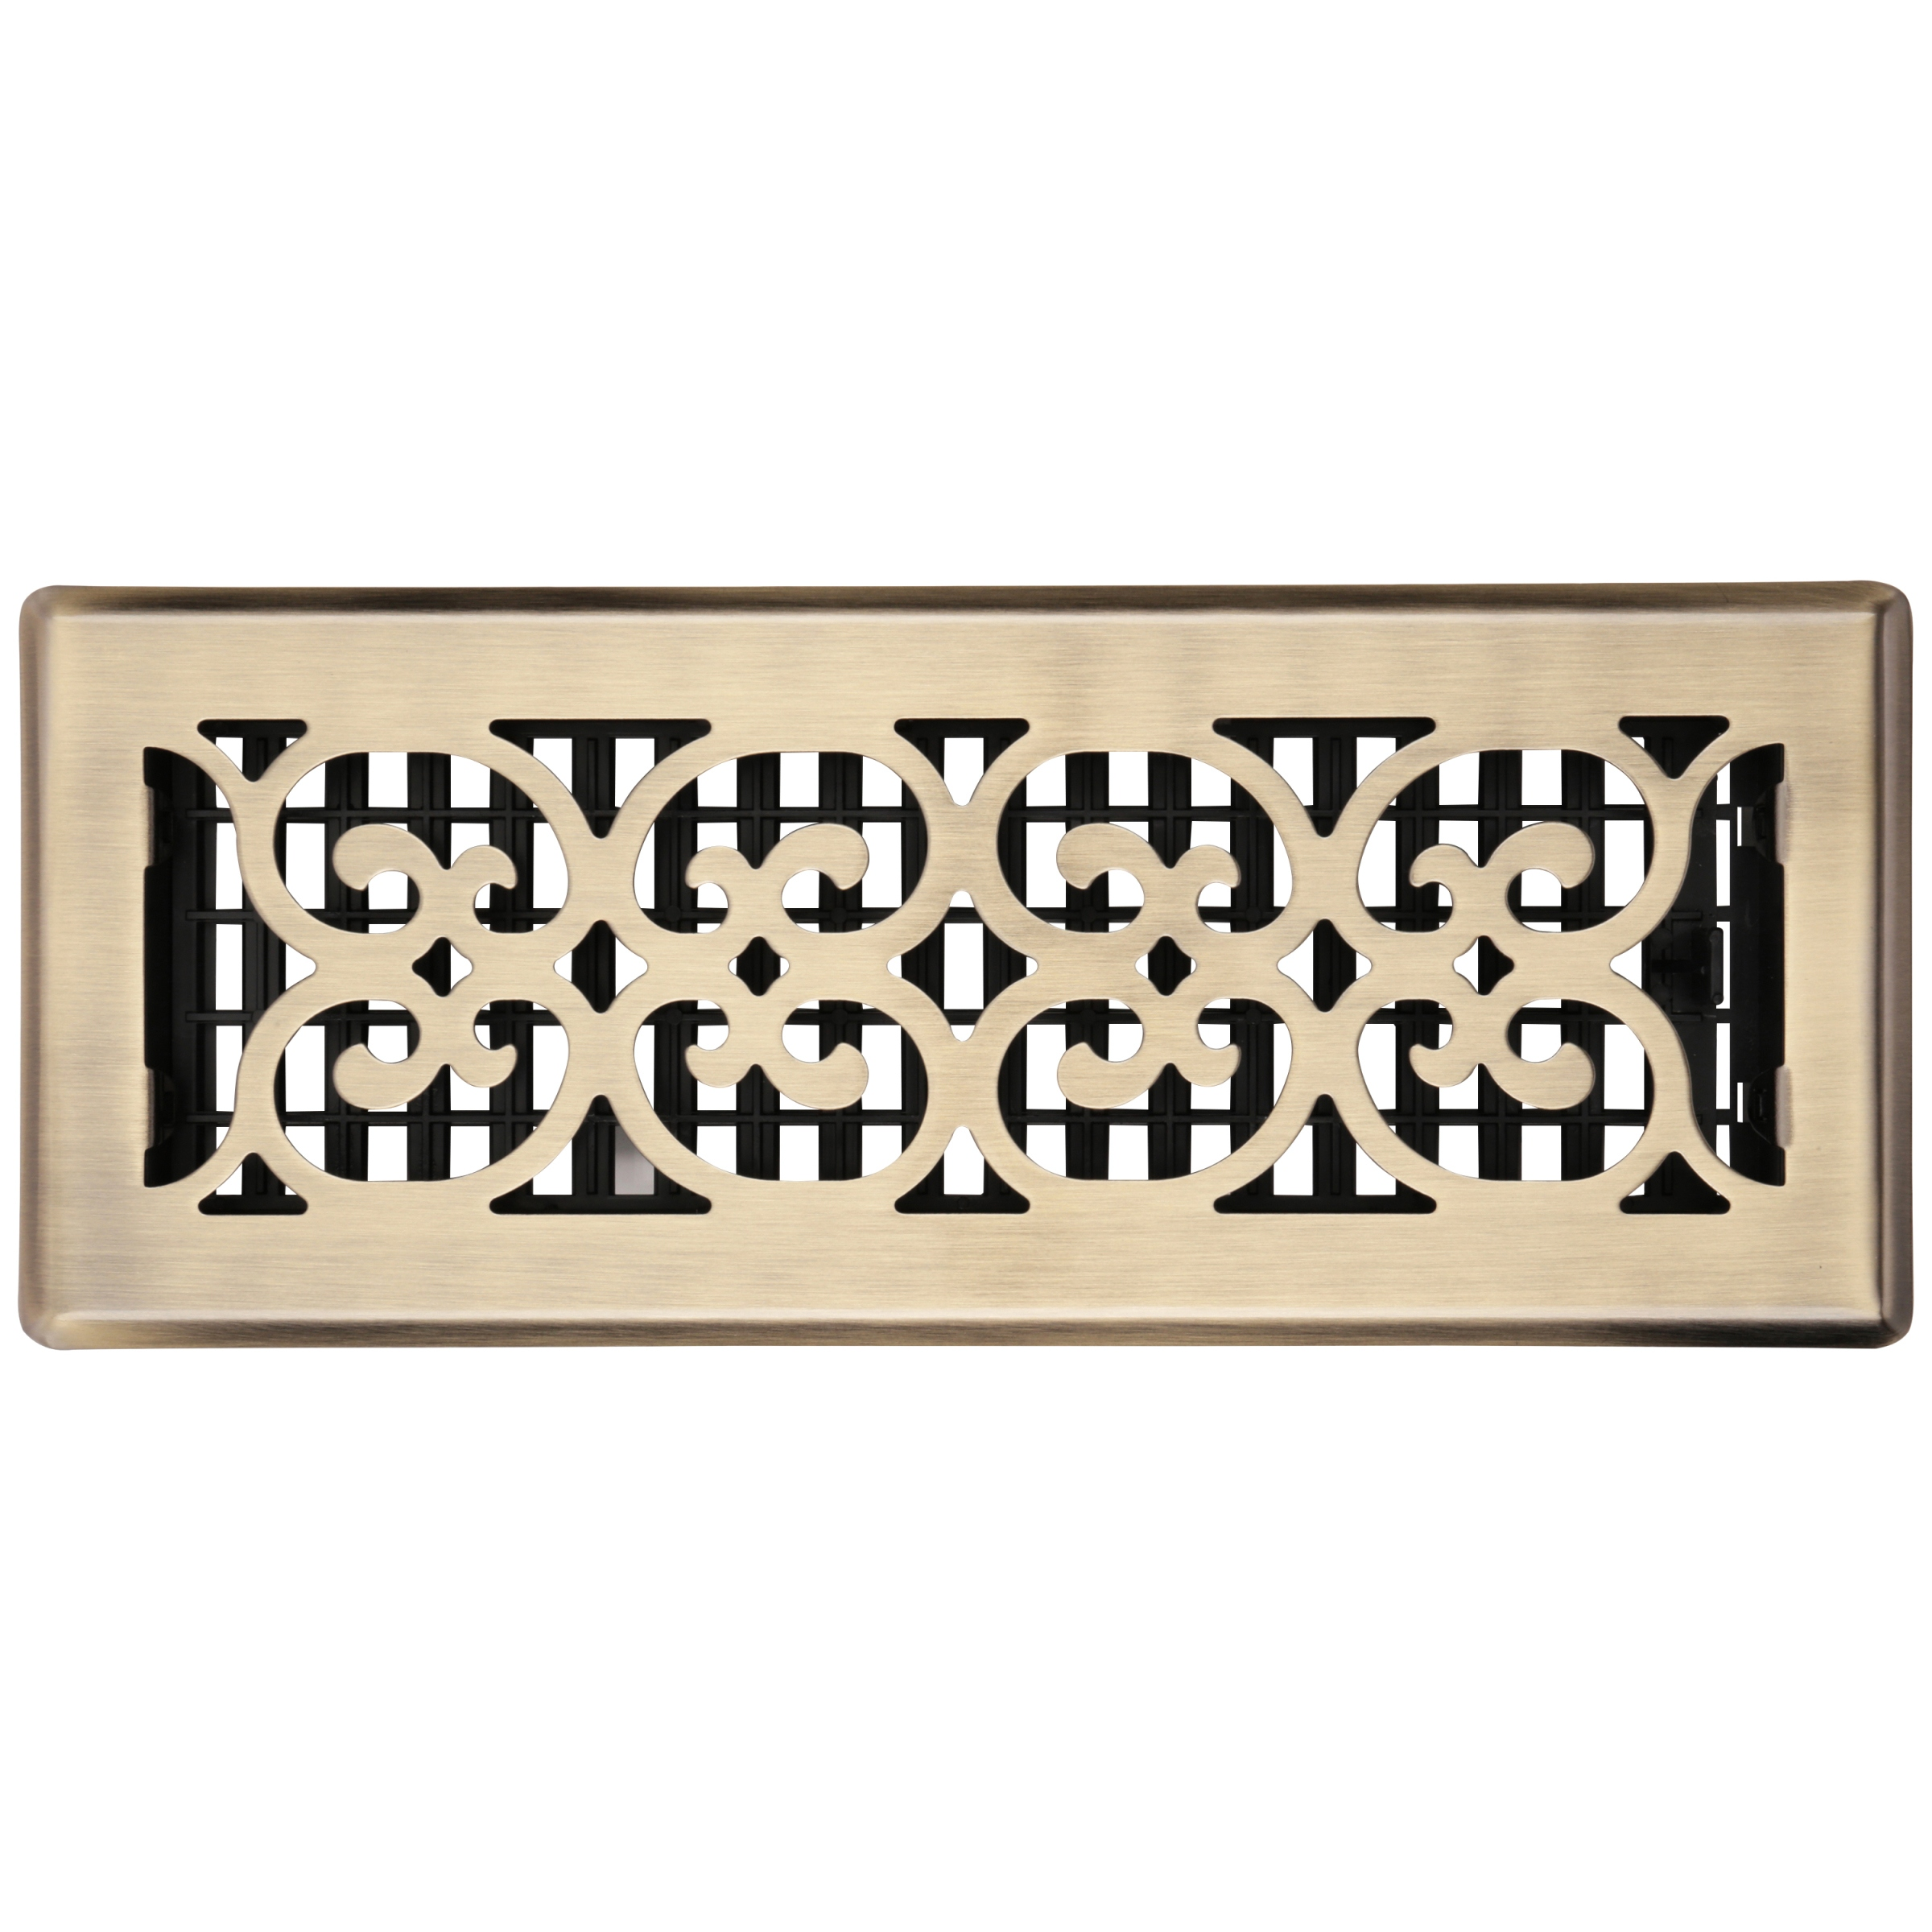 "Decor Grates® 4""x12"" Scroll™ Steel Plated Antique Floor Register Pack"